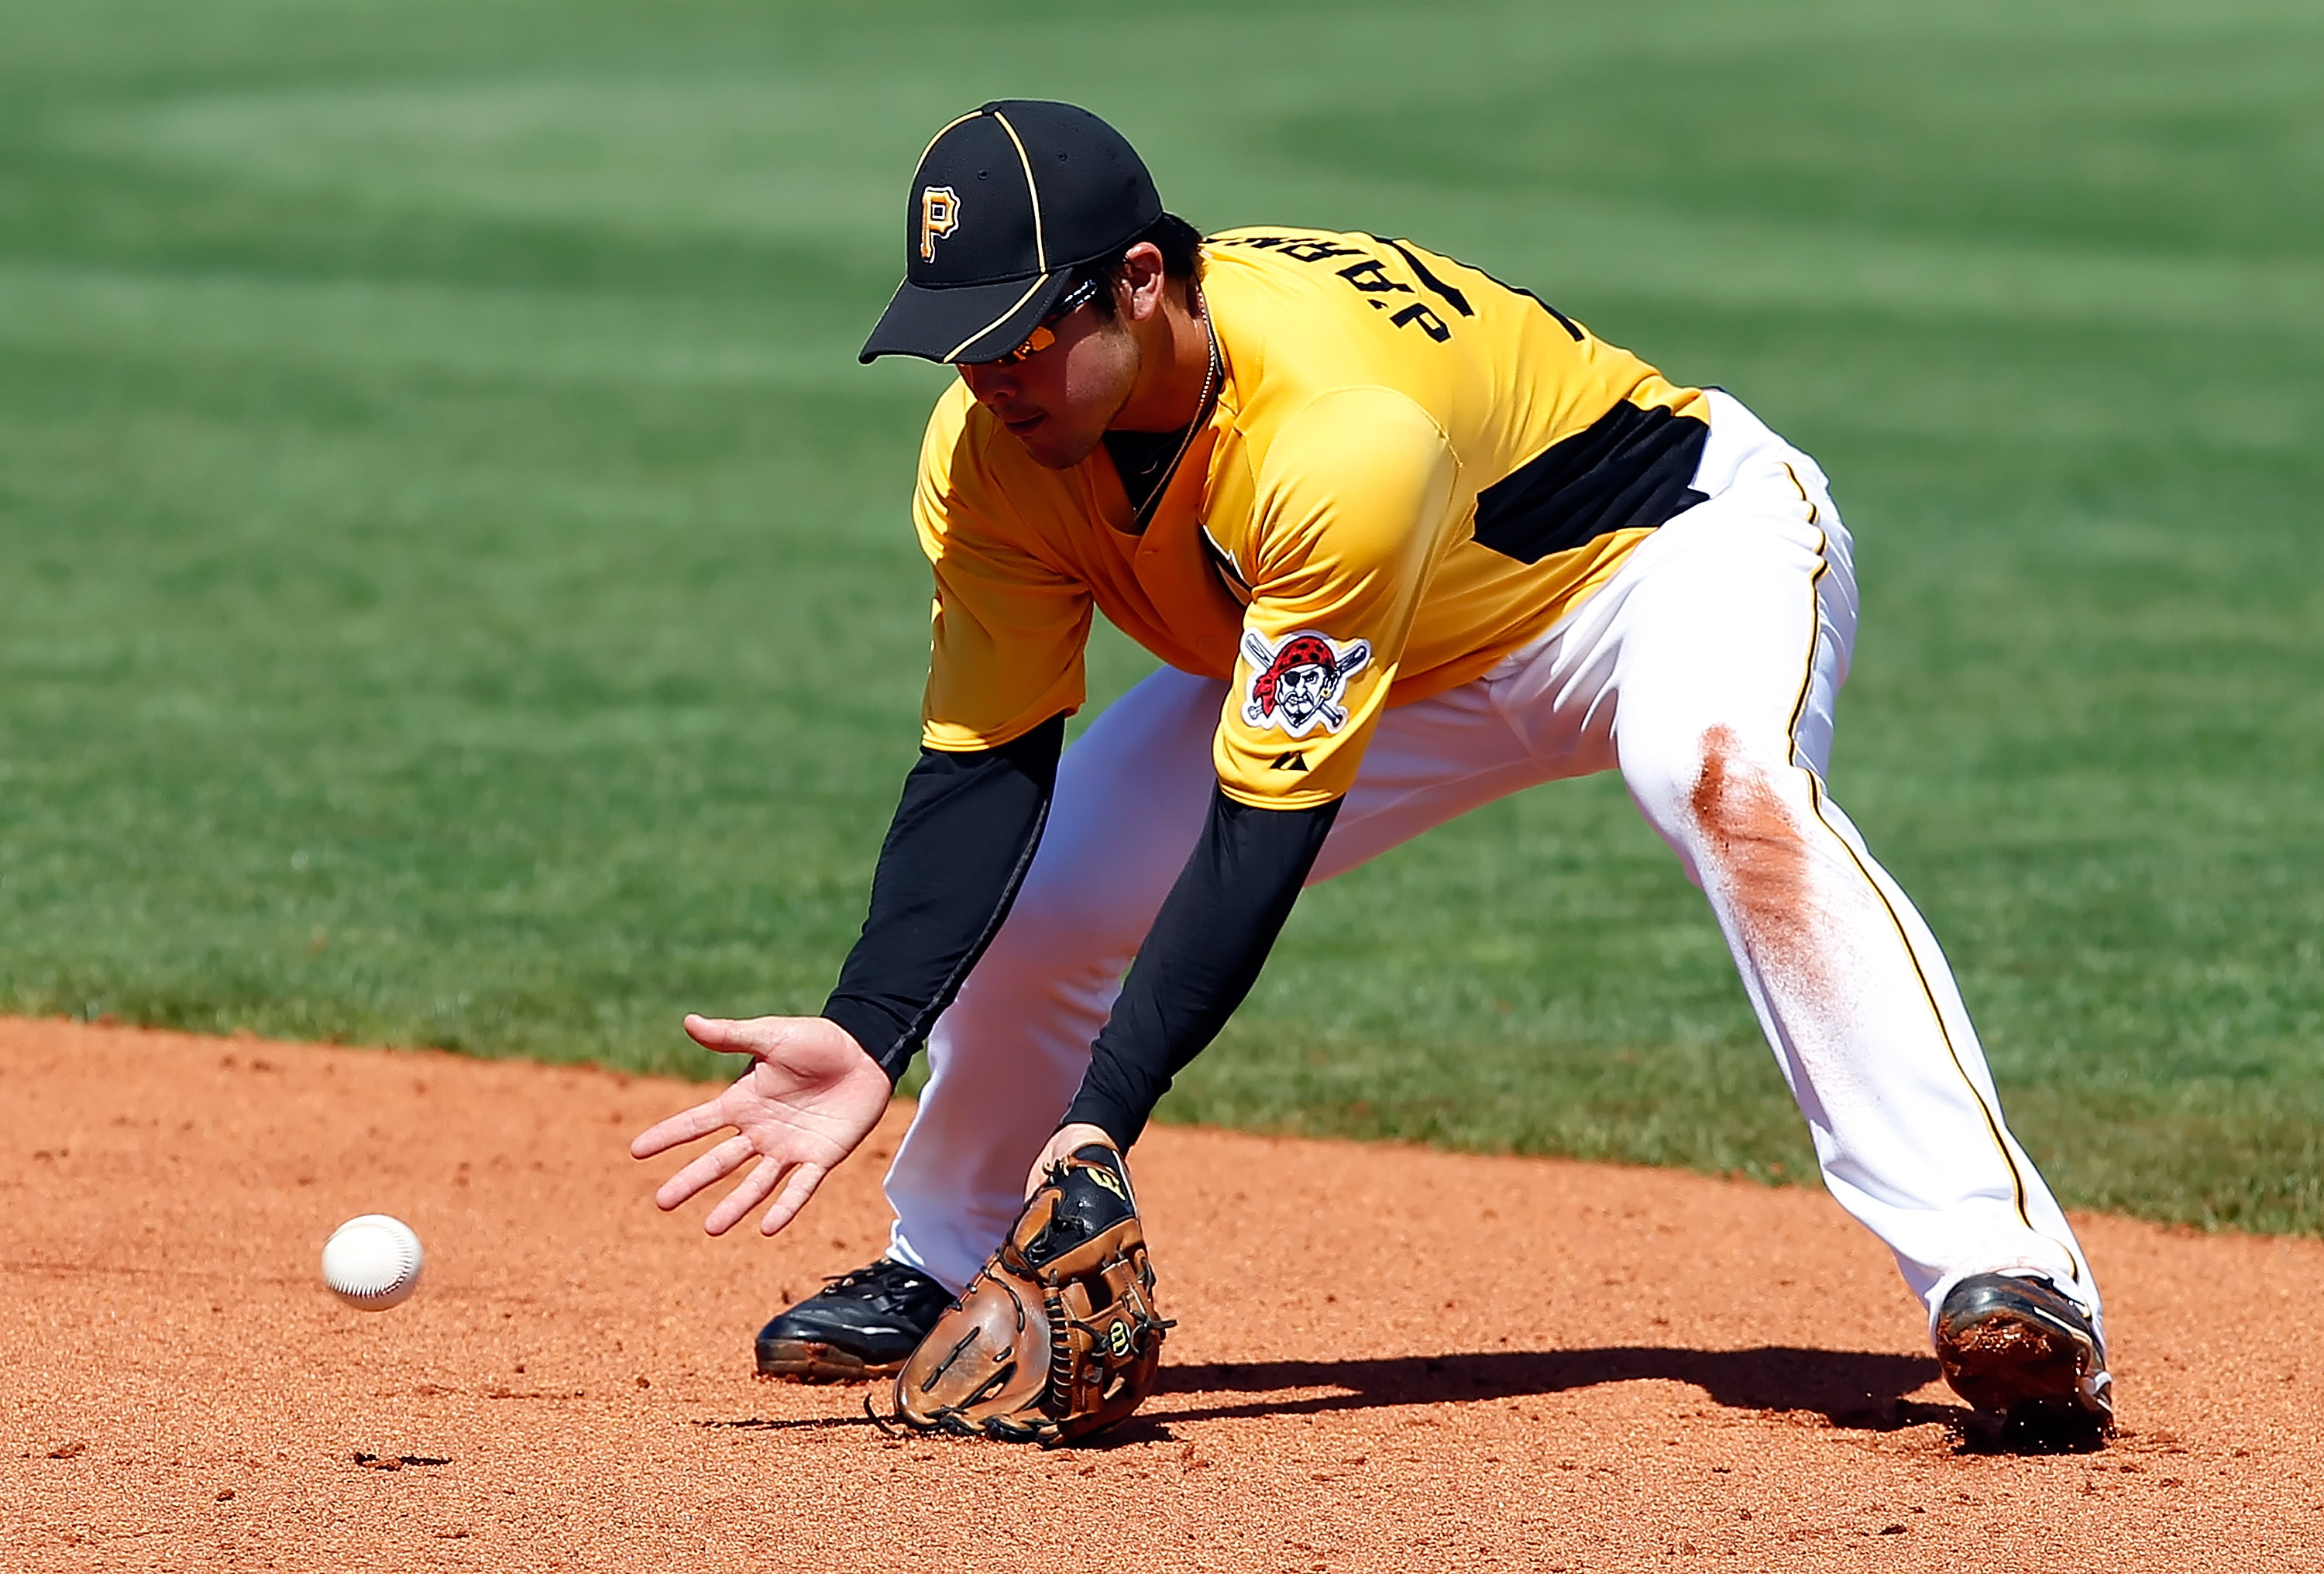 BRADENTON, FL - FEBRUARY 28:  Infielder Chase d'Arnaud #79 of the Pittsburgh Pirates fields a ground ball against the Baltimore Orioles during a Grapefruit League Spring Training Game at McKechnie Field on February 28, 2011 in Bradenton, Florida.  (Photo